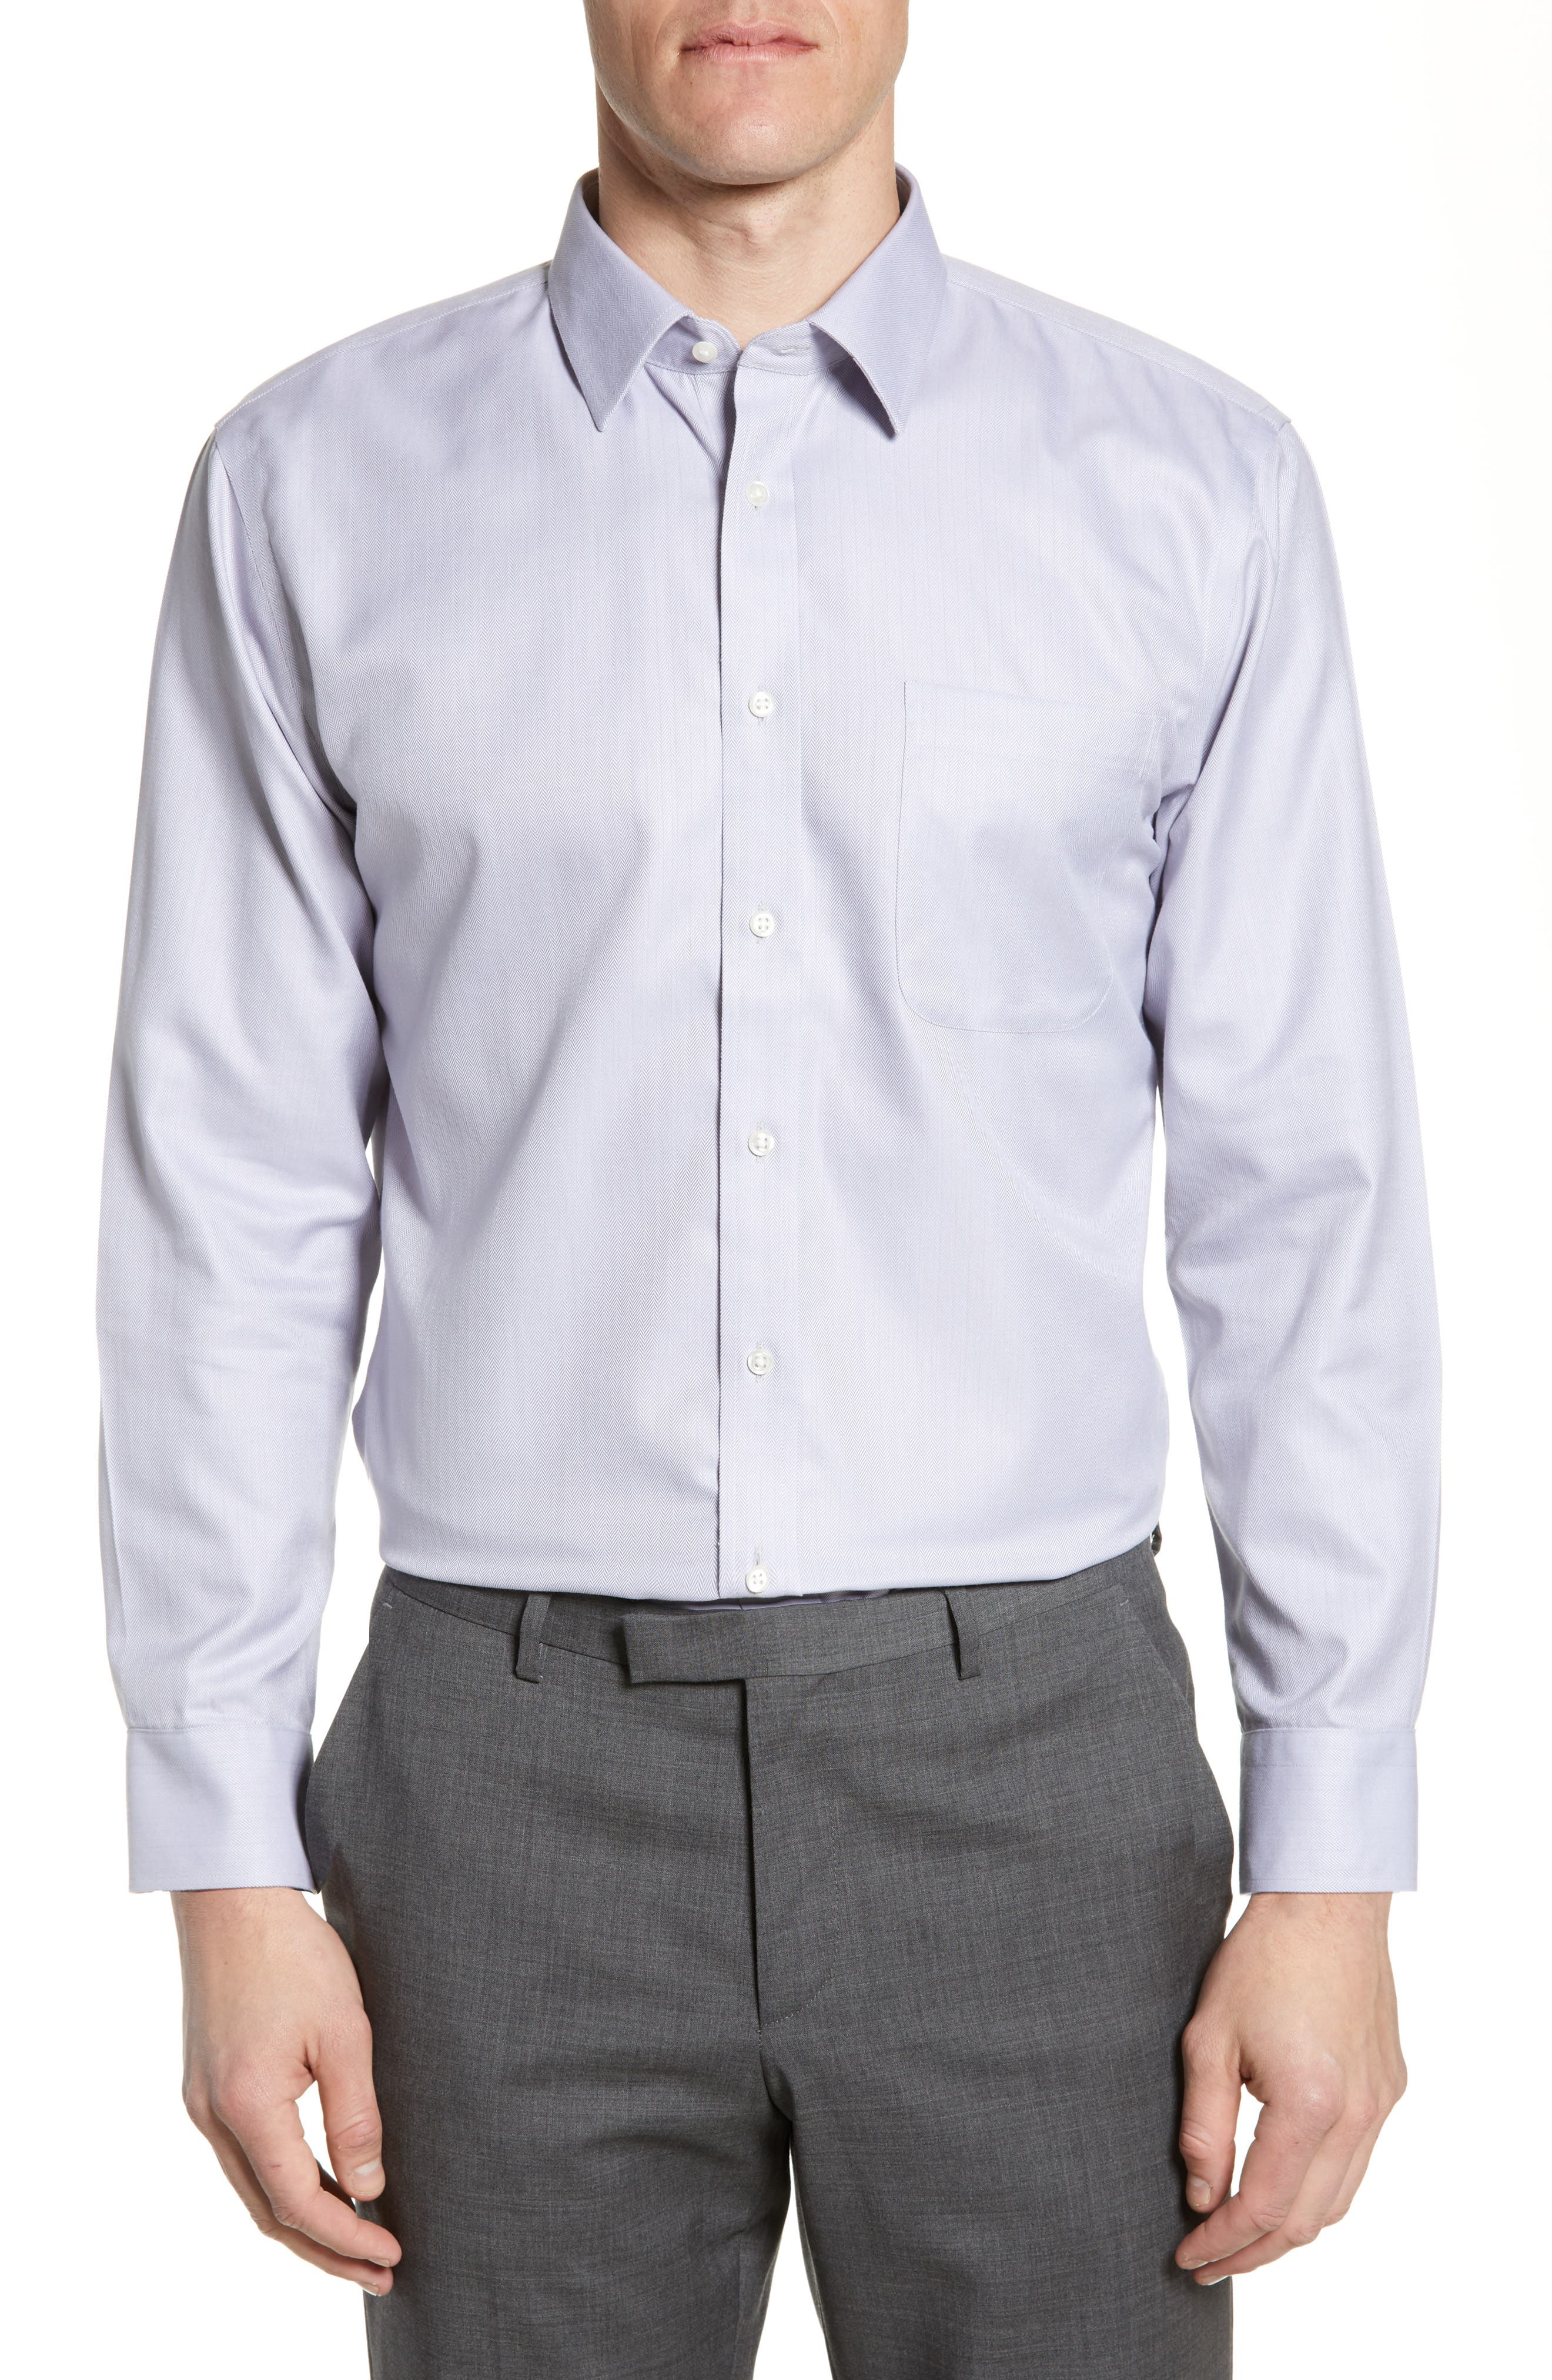 NORDSTROM MEN'S SHOP, Smartcare<sup>™</sup> Trim Fit Herringbone Dress Shirt, Main thumbnail 1, color, GREY DECEMBER